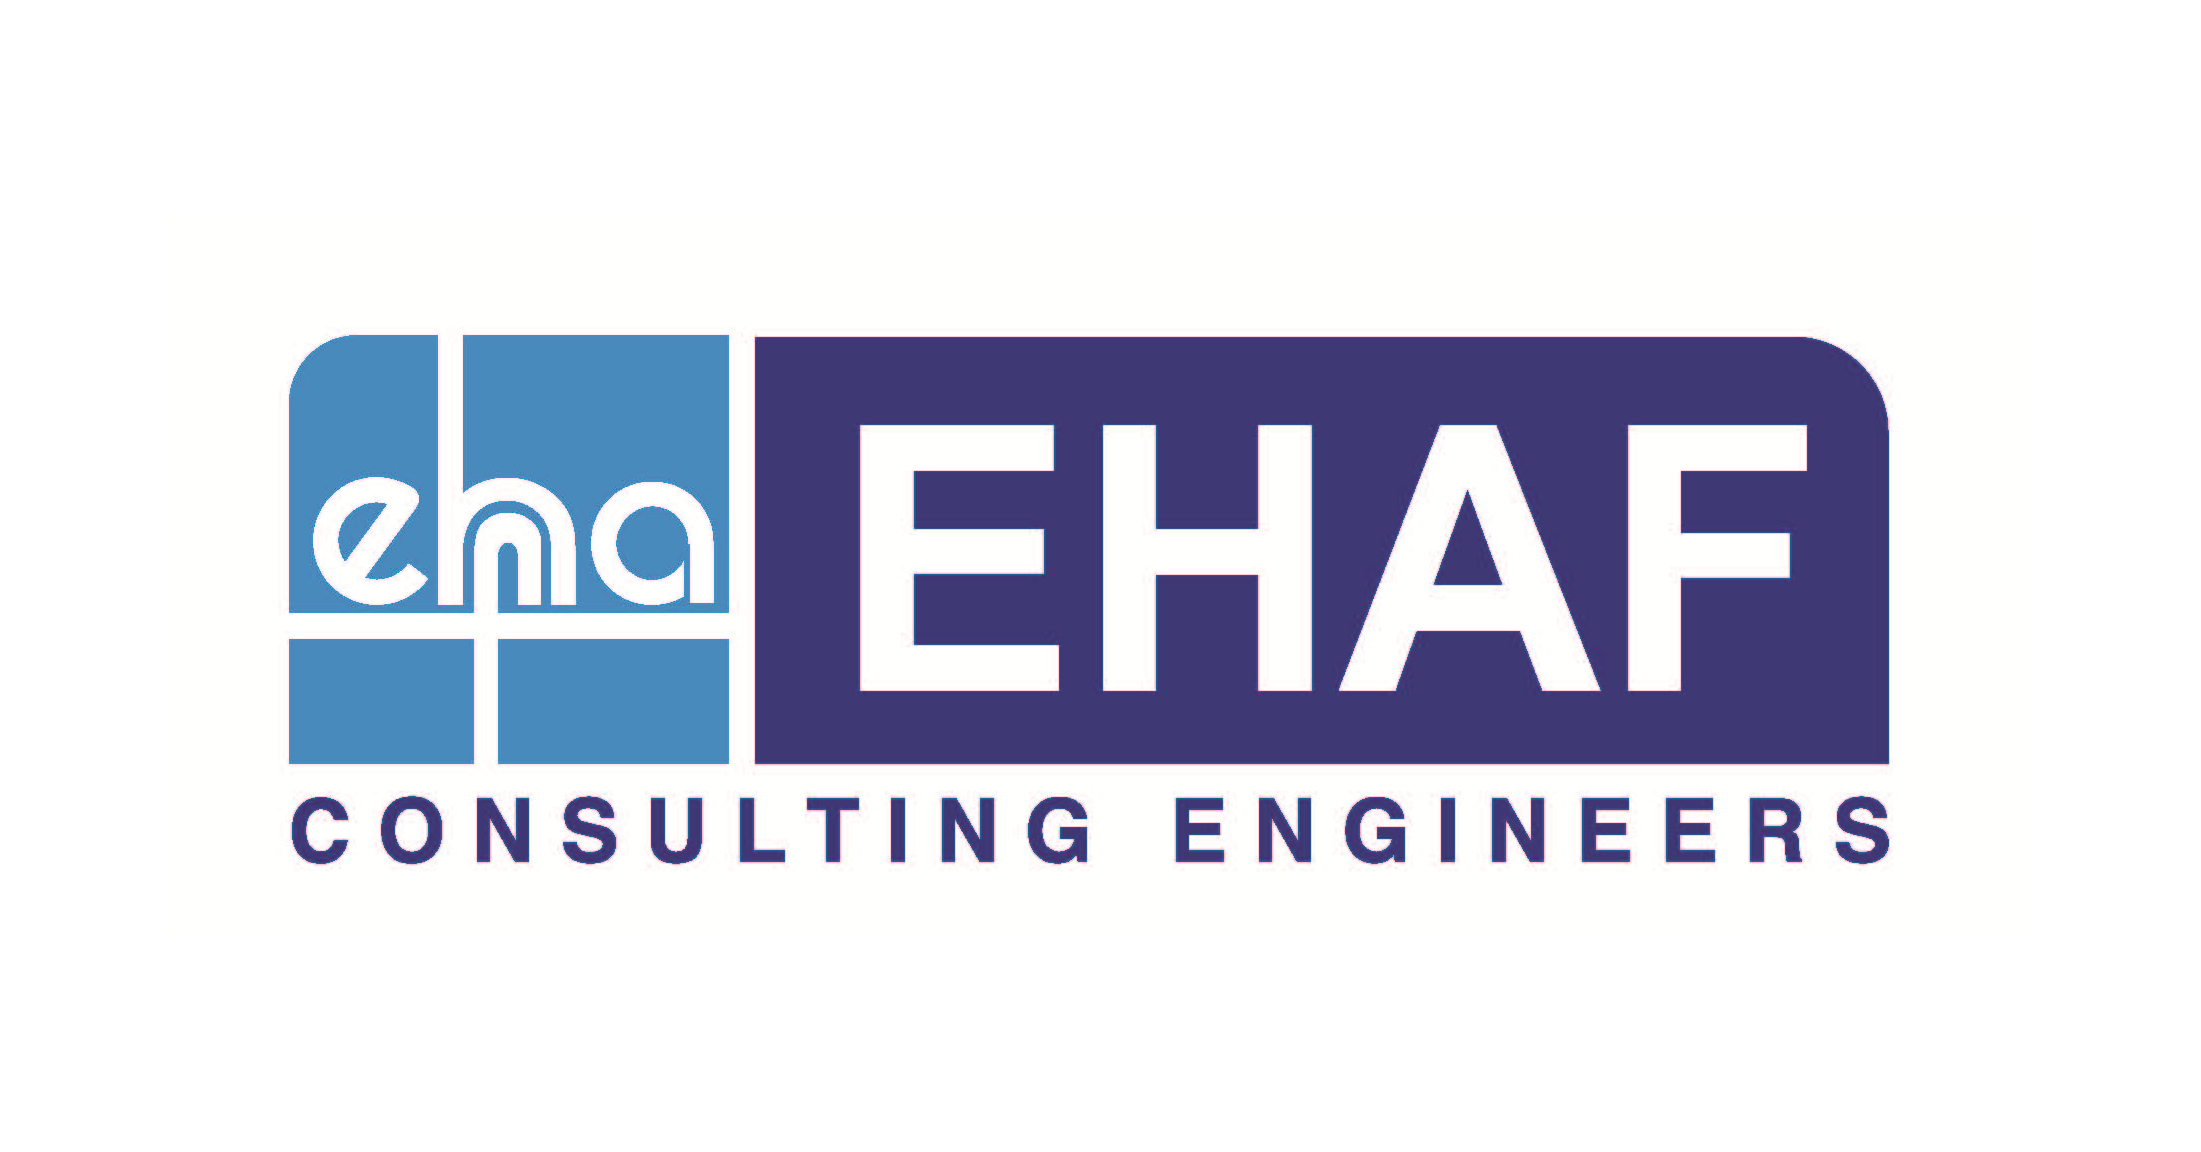 Jobs and careers at ehaf consulting engineers egypt wuzzuf for Consulting logo